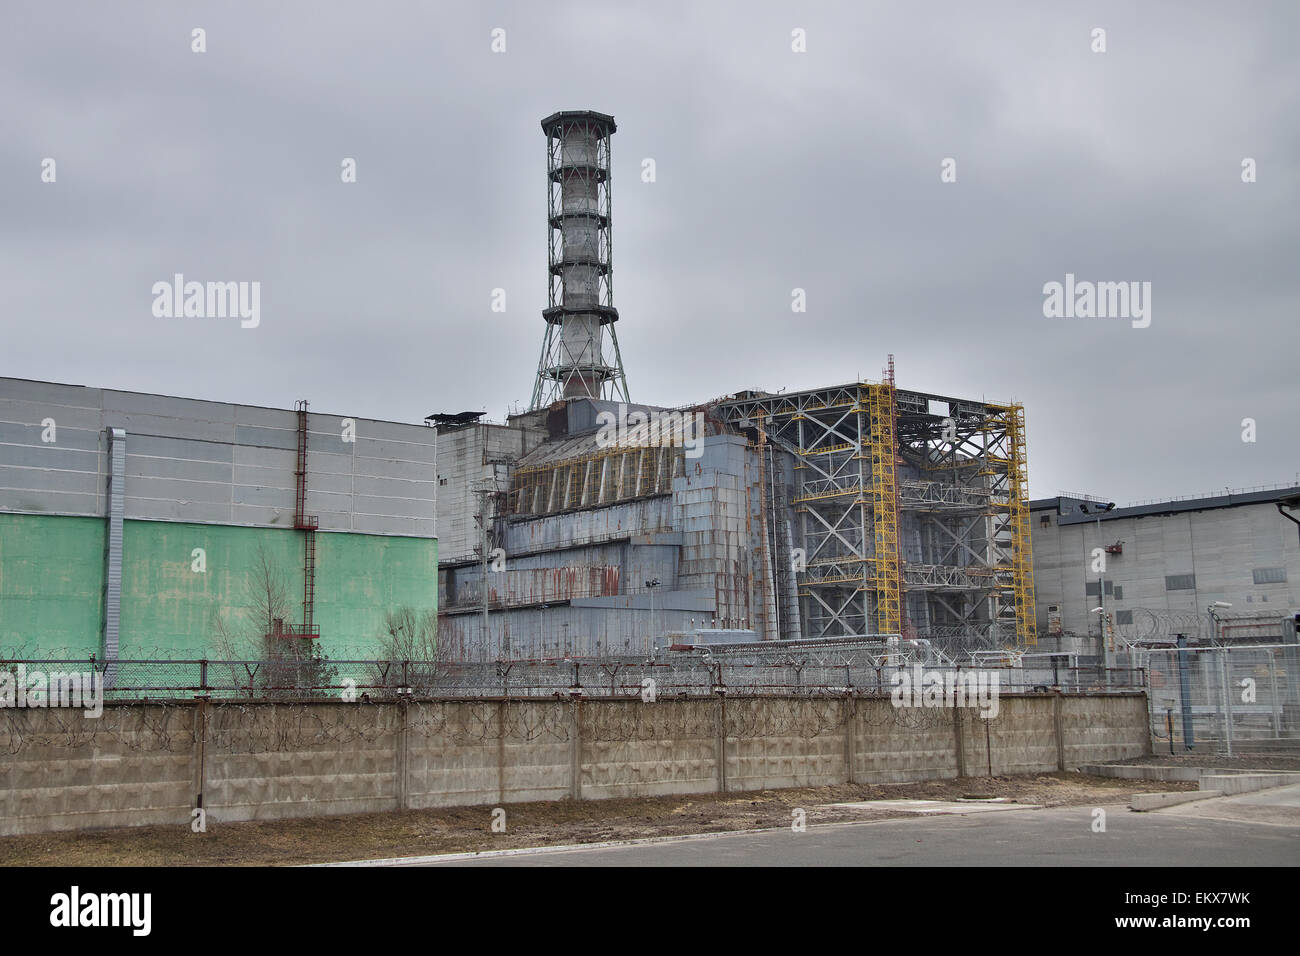 Chernobyl nuclear power plant in pripyat stock photo 81096895 alamy chernobyl nuclear power plant in pripyat freerunsca Images